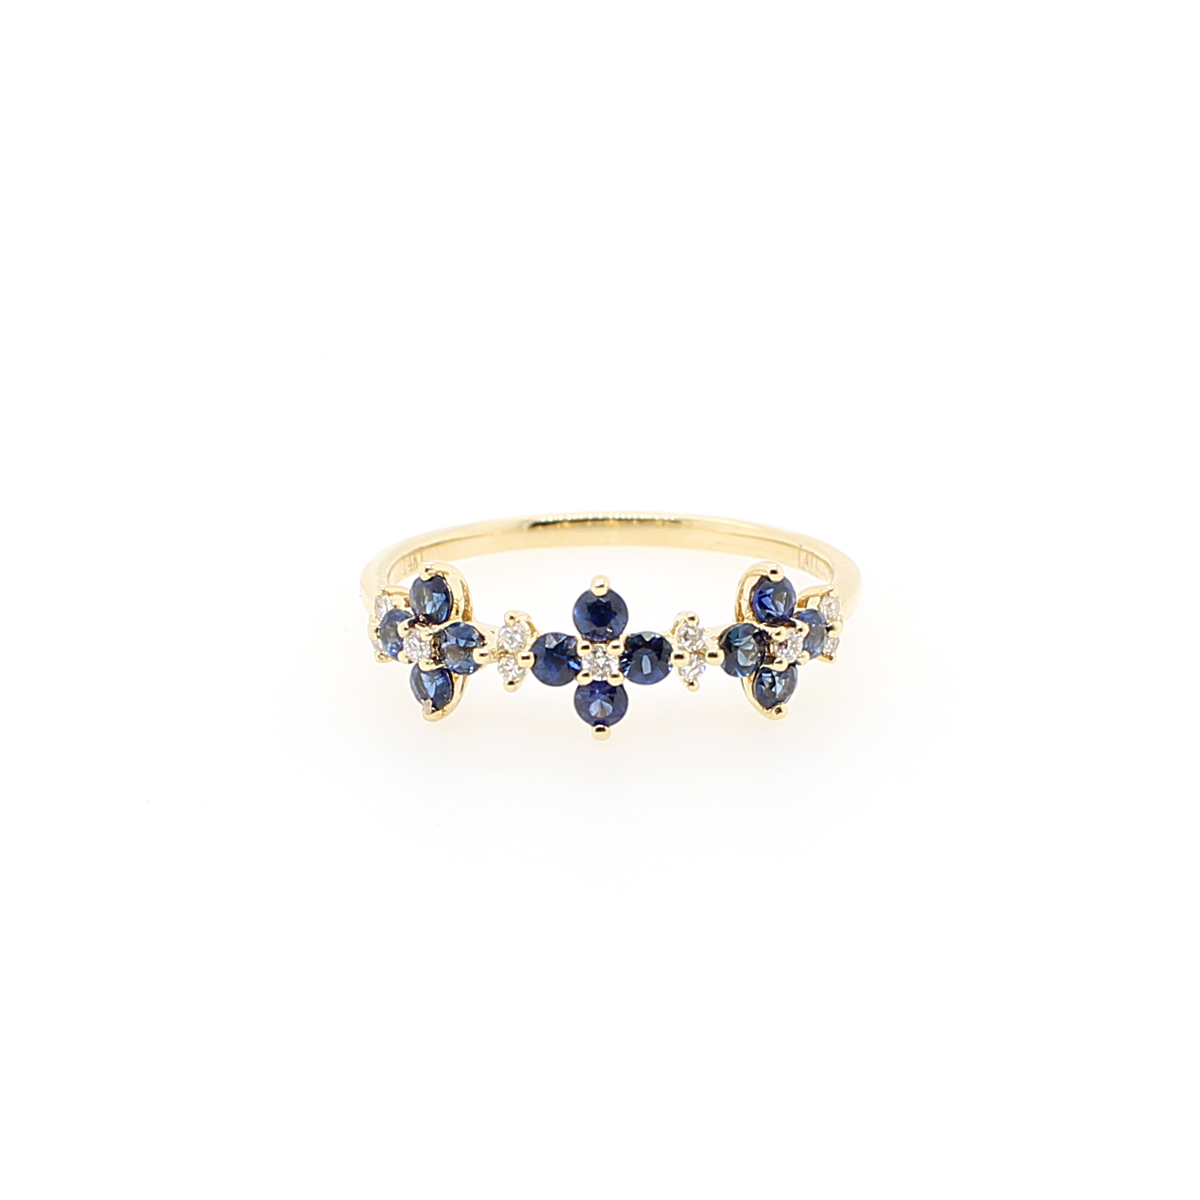 14 Karat Yellow Gold Sapphire and Diamond Flower Ring